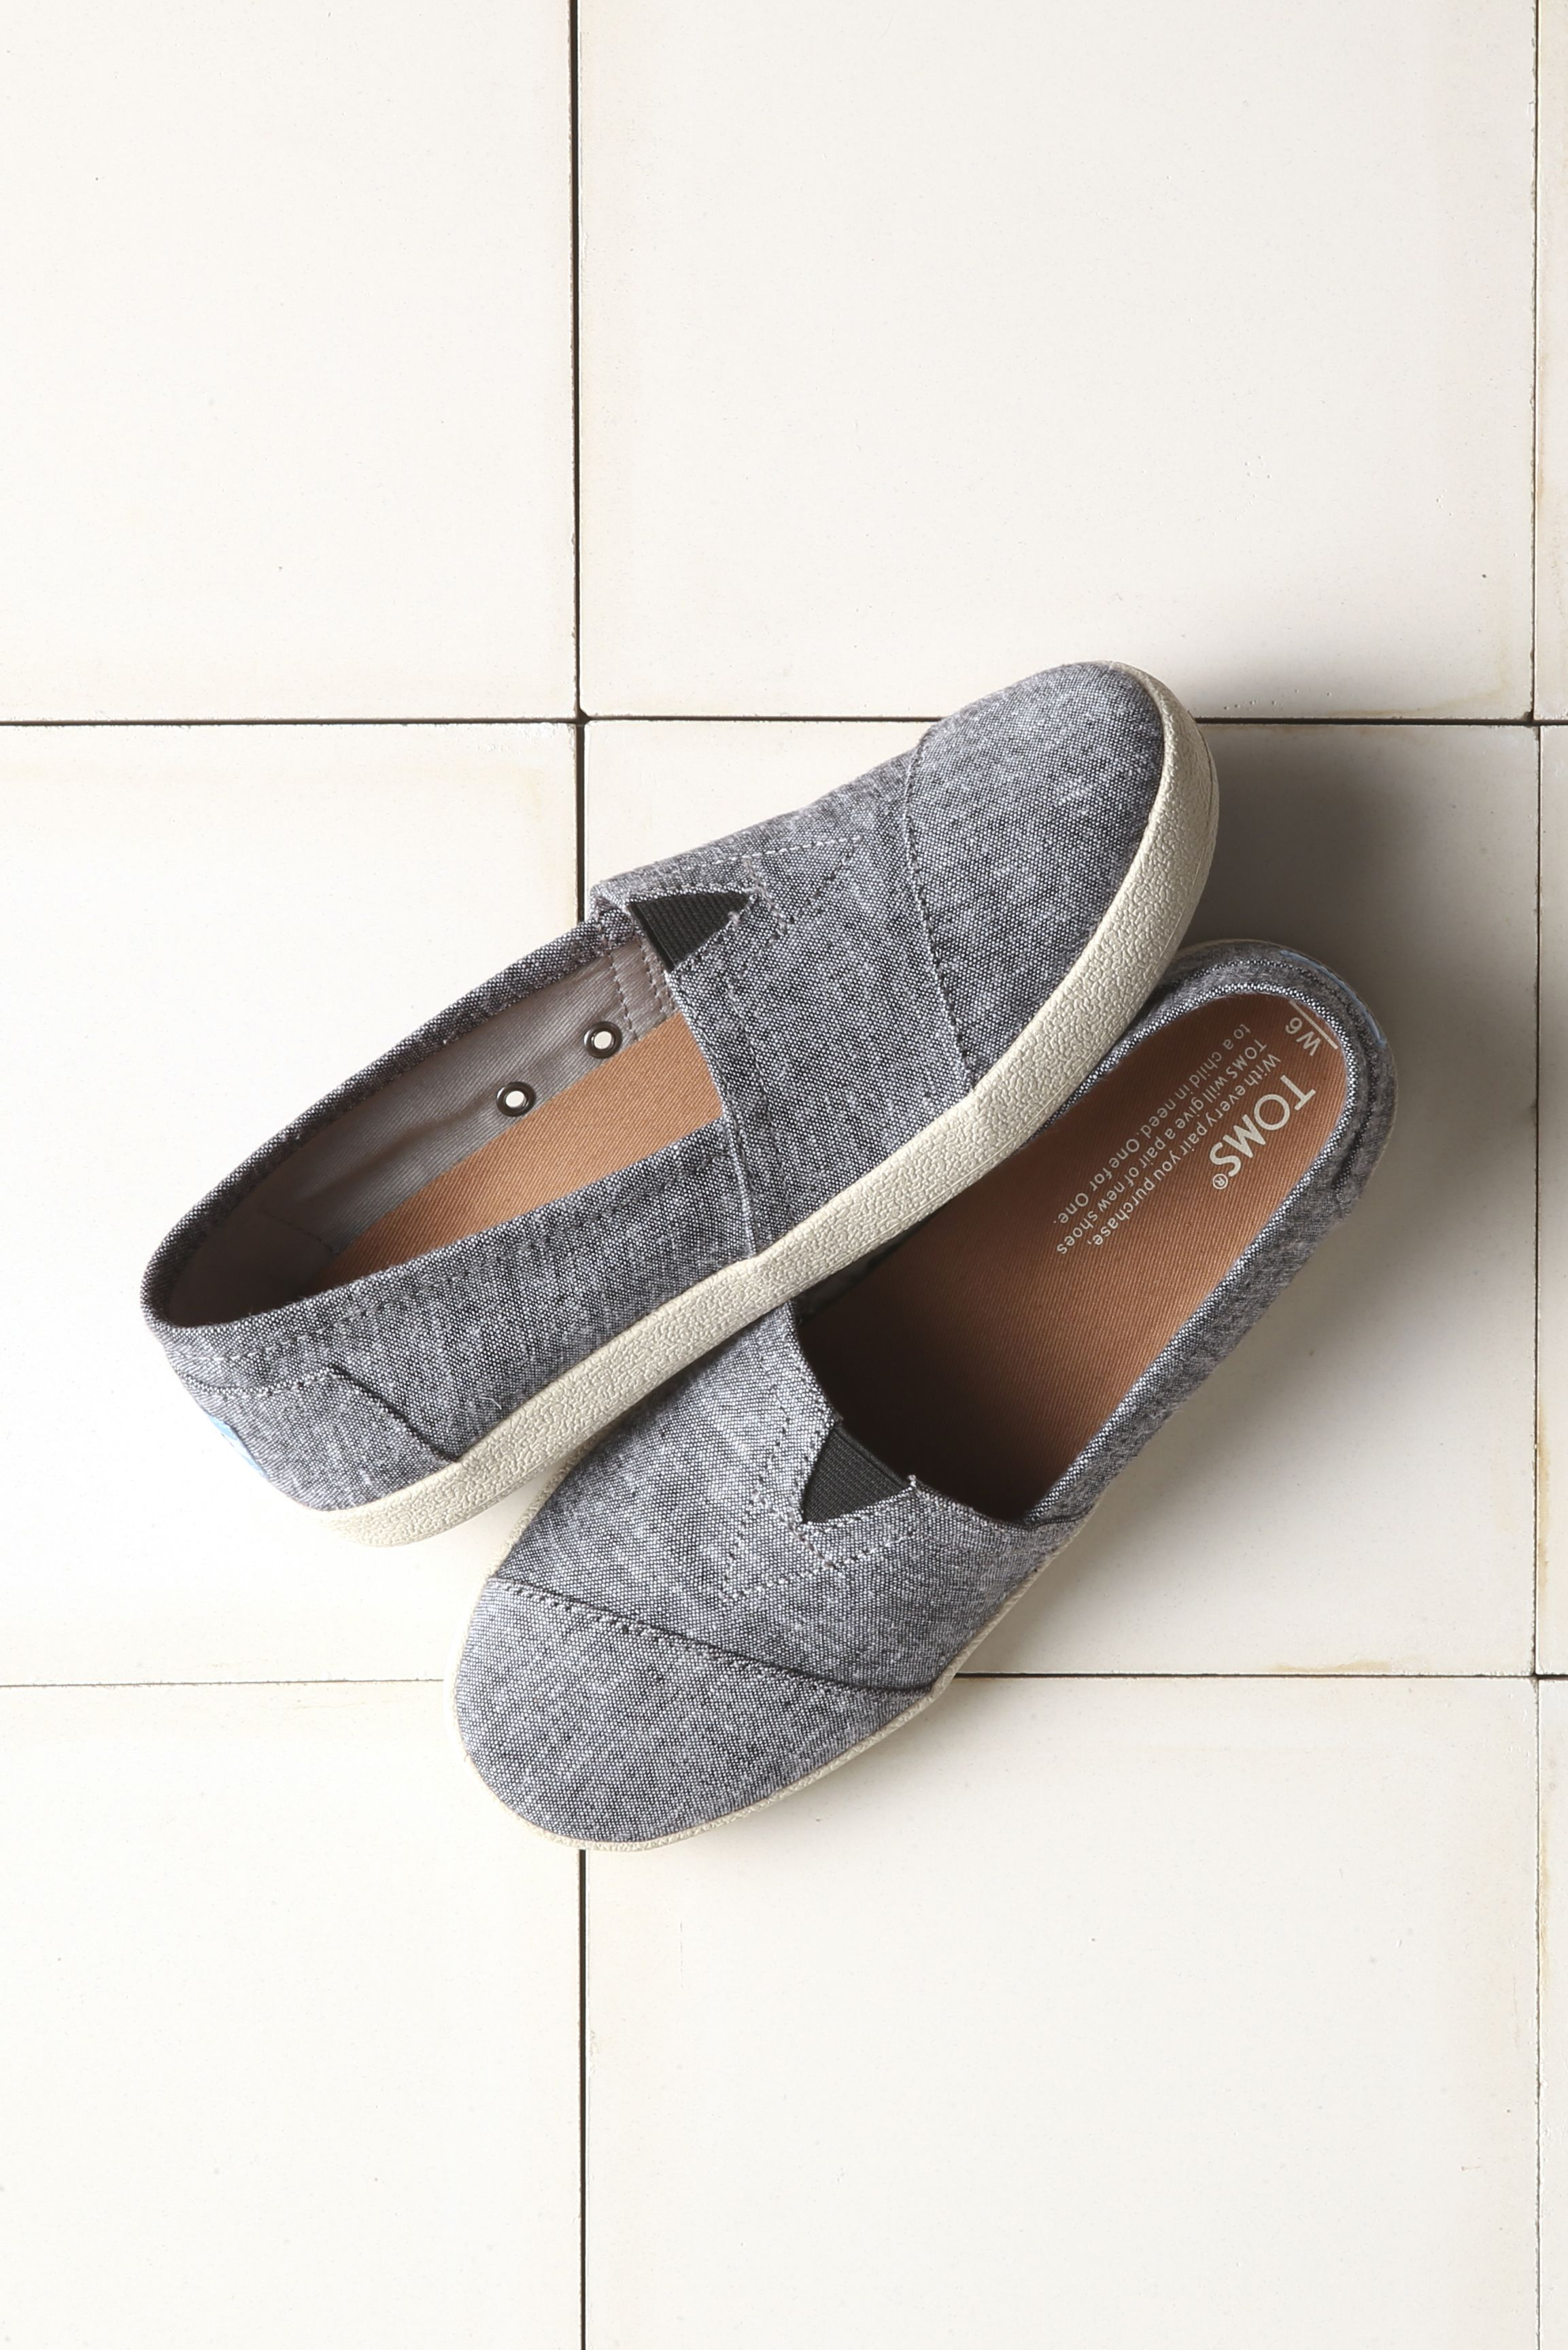 49de07141d8 All the goodness of TOMS Classics with added comfort and durability